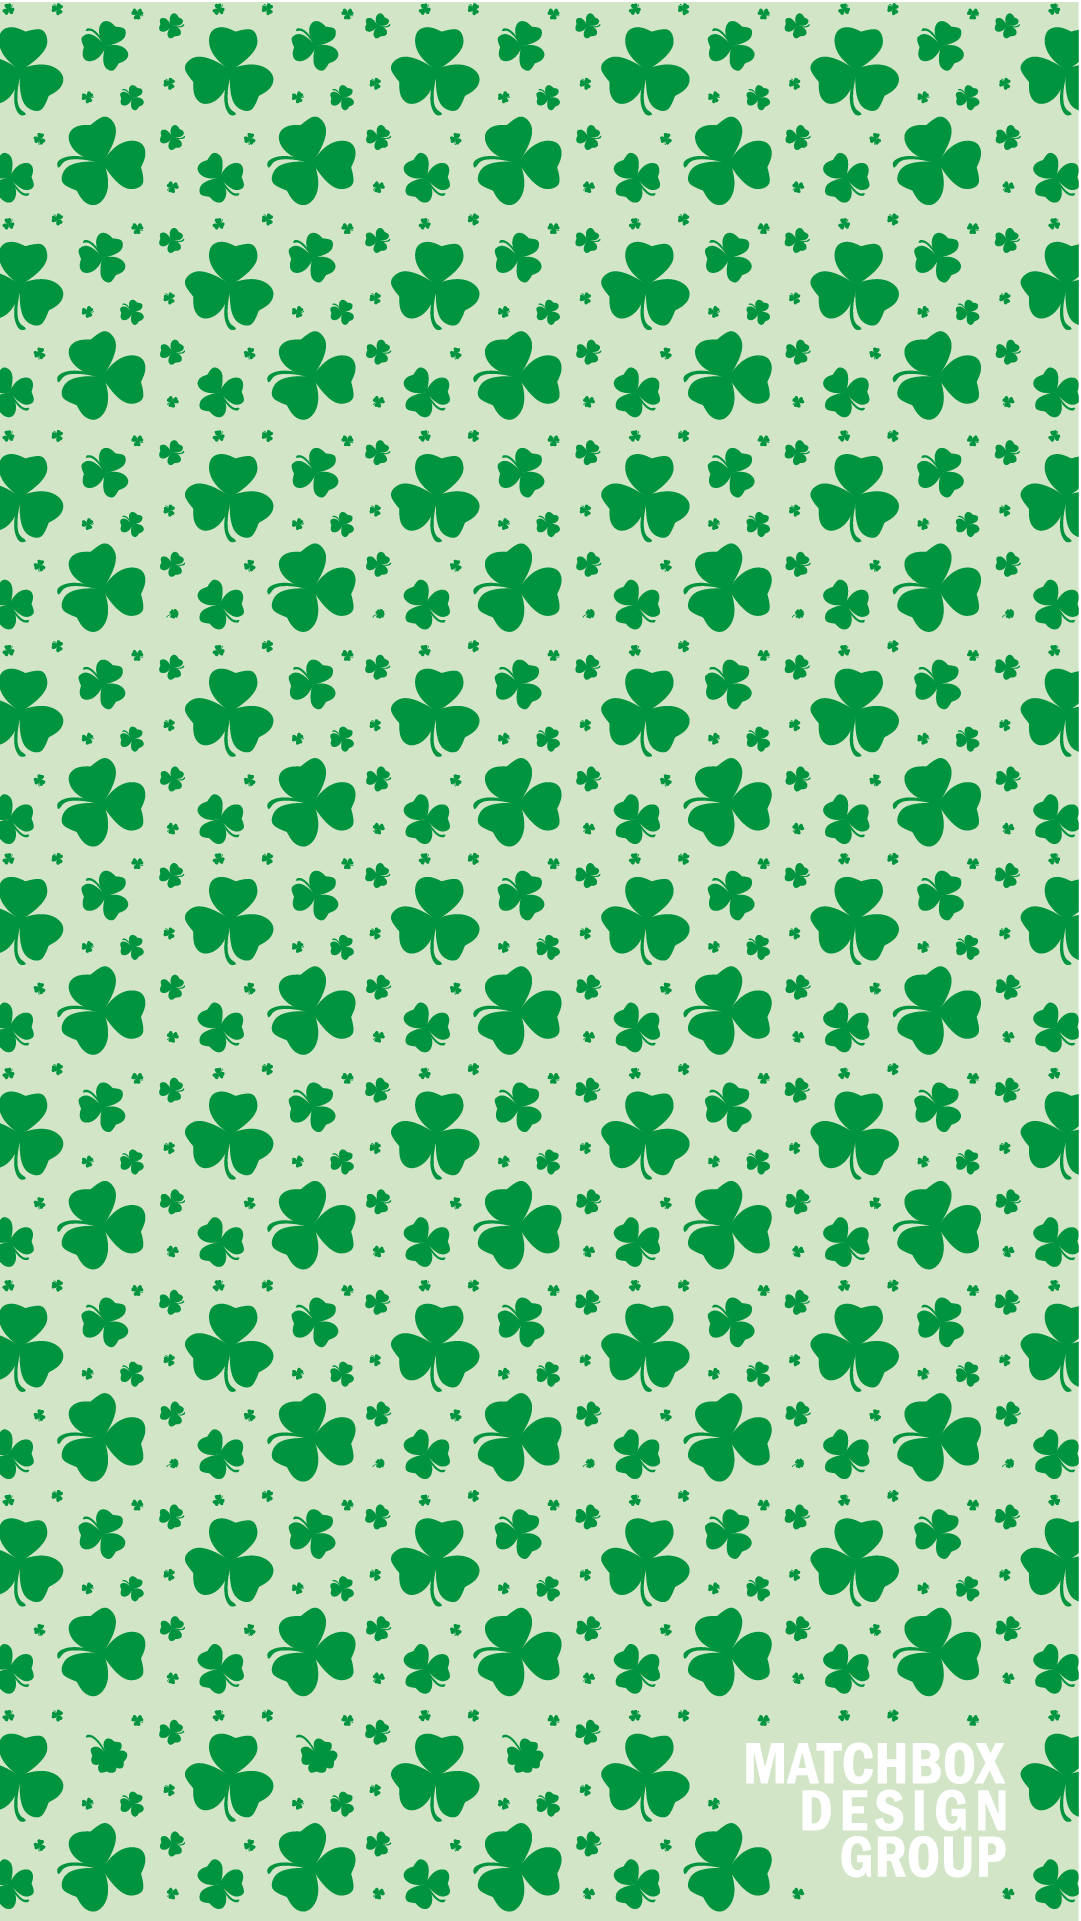 St Patricks Day Wallpaper Matchbox Design Group St Louis MO 1081x1921